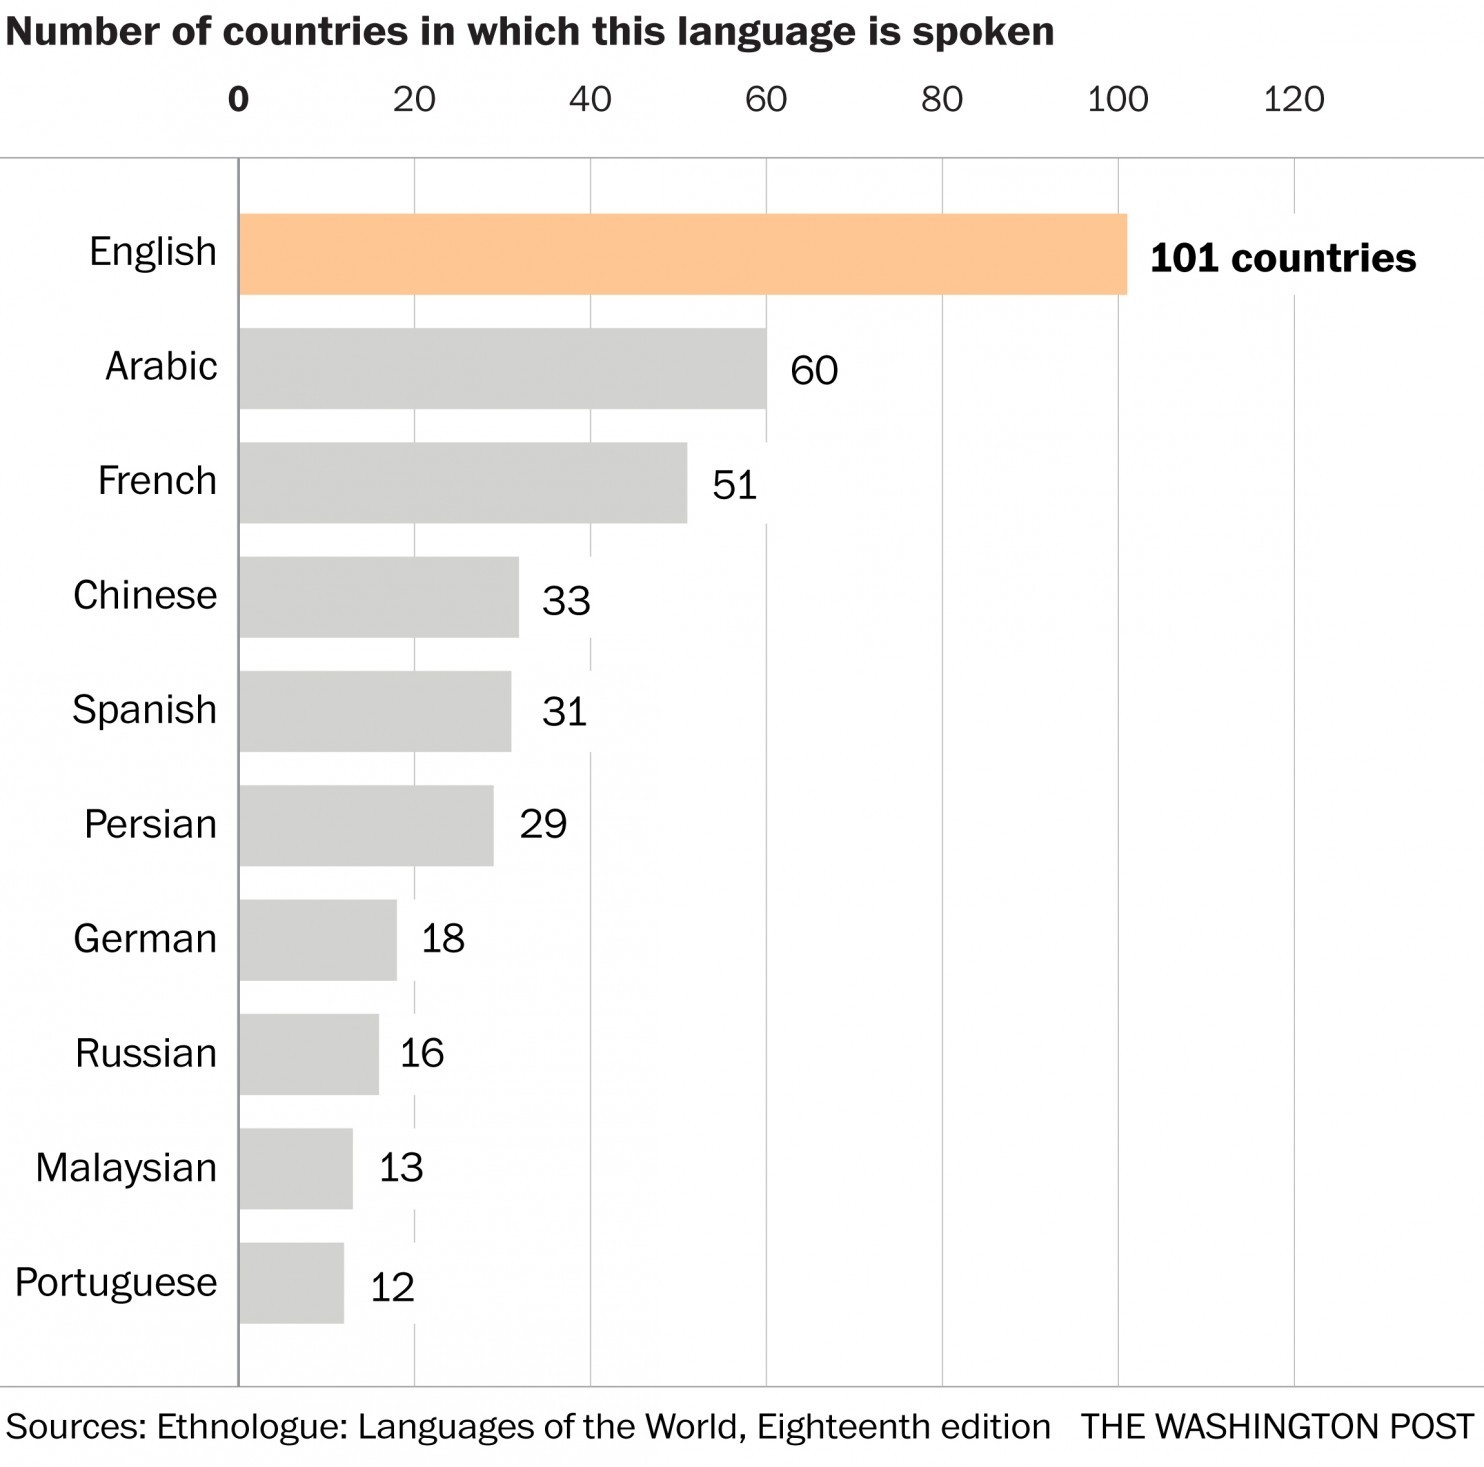 languages-spoken-in-many-countries